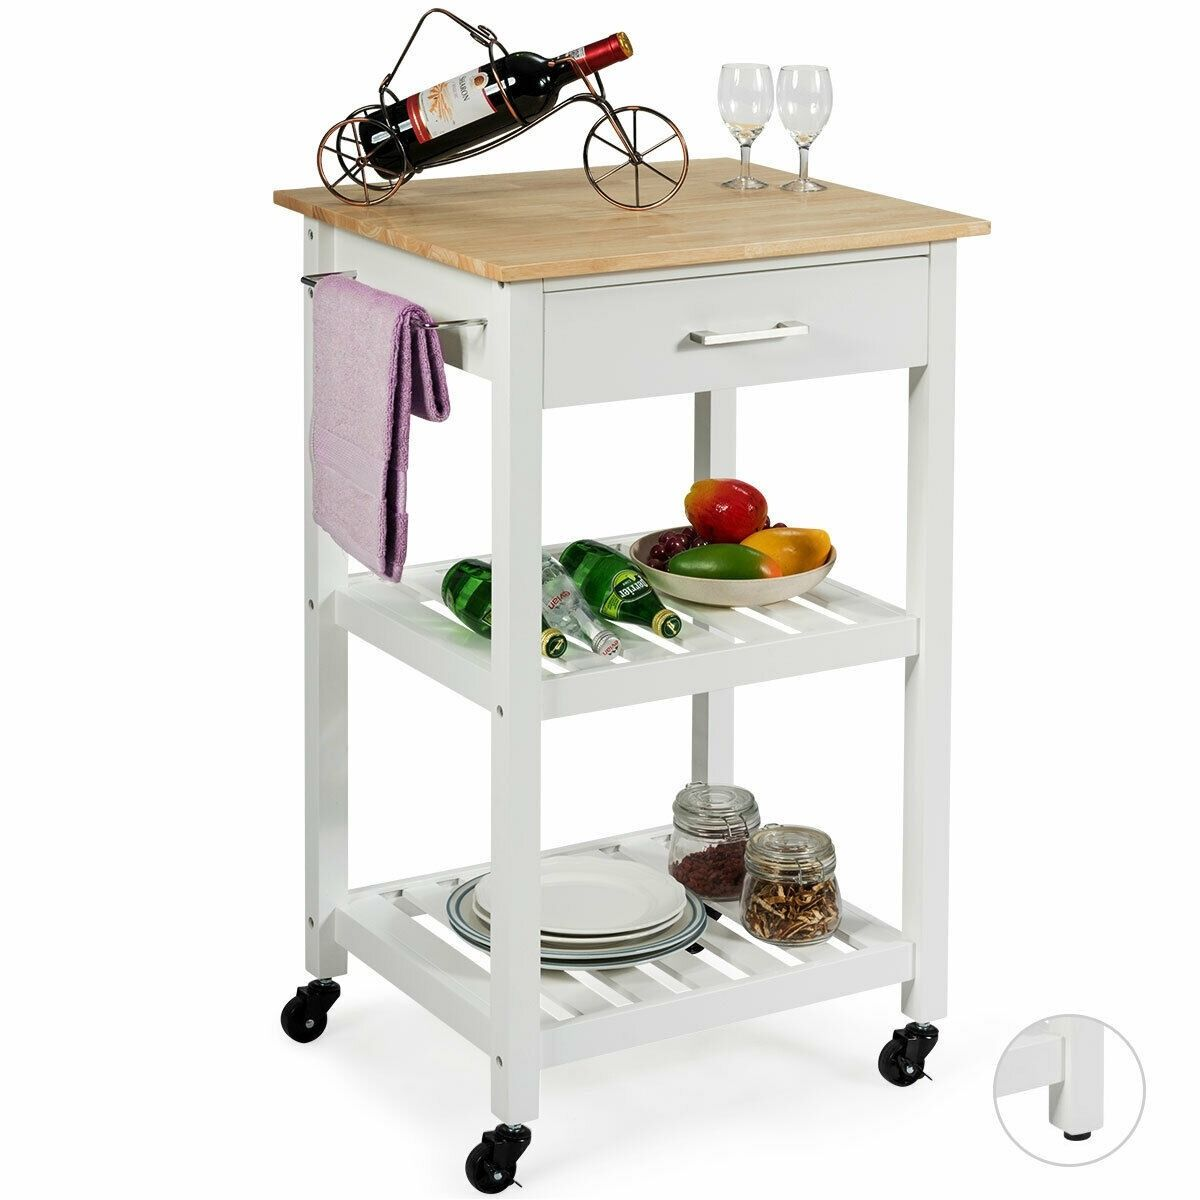 Kitchen Island Cart Multifunction Rolling Trolley Small Wood Cart